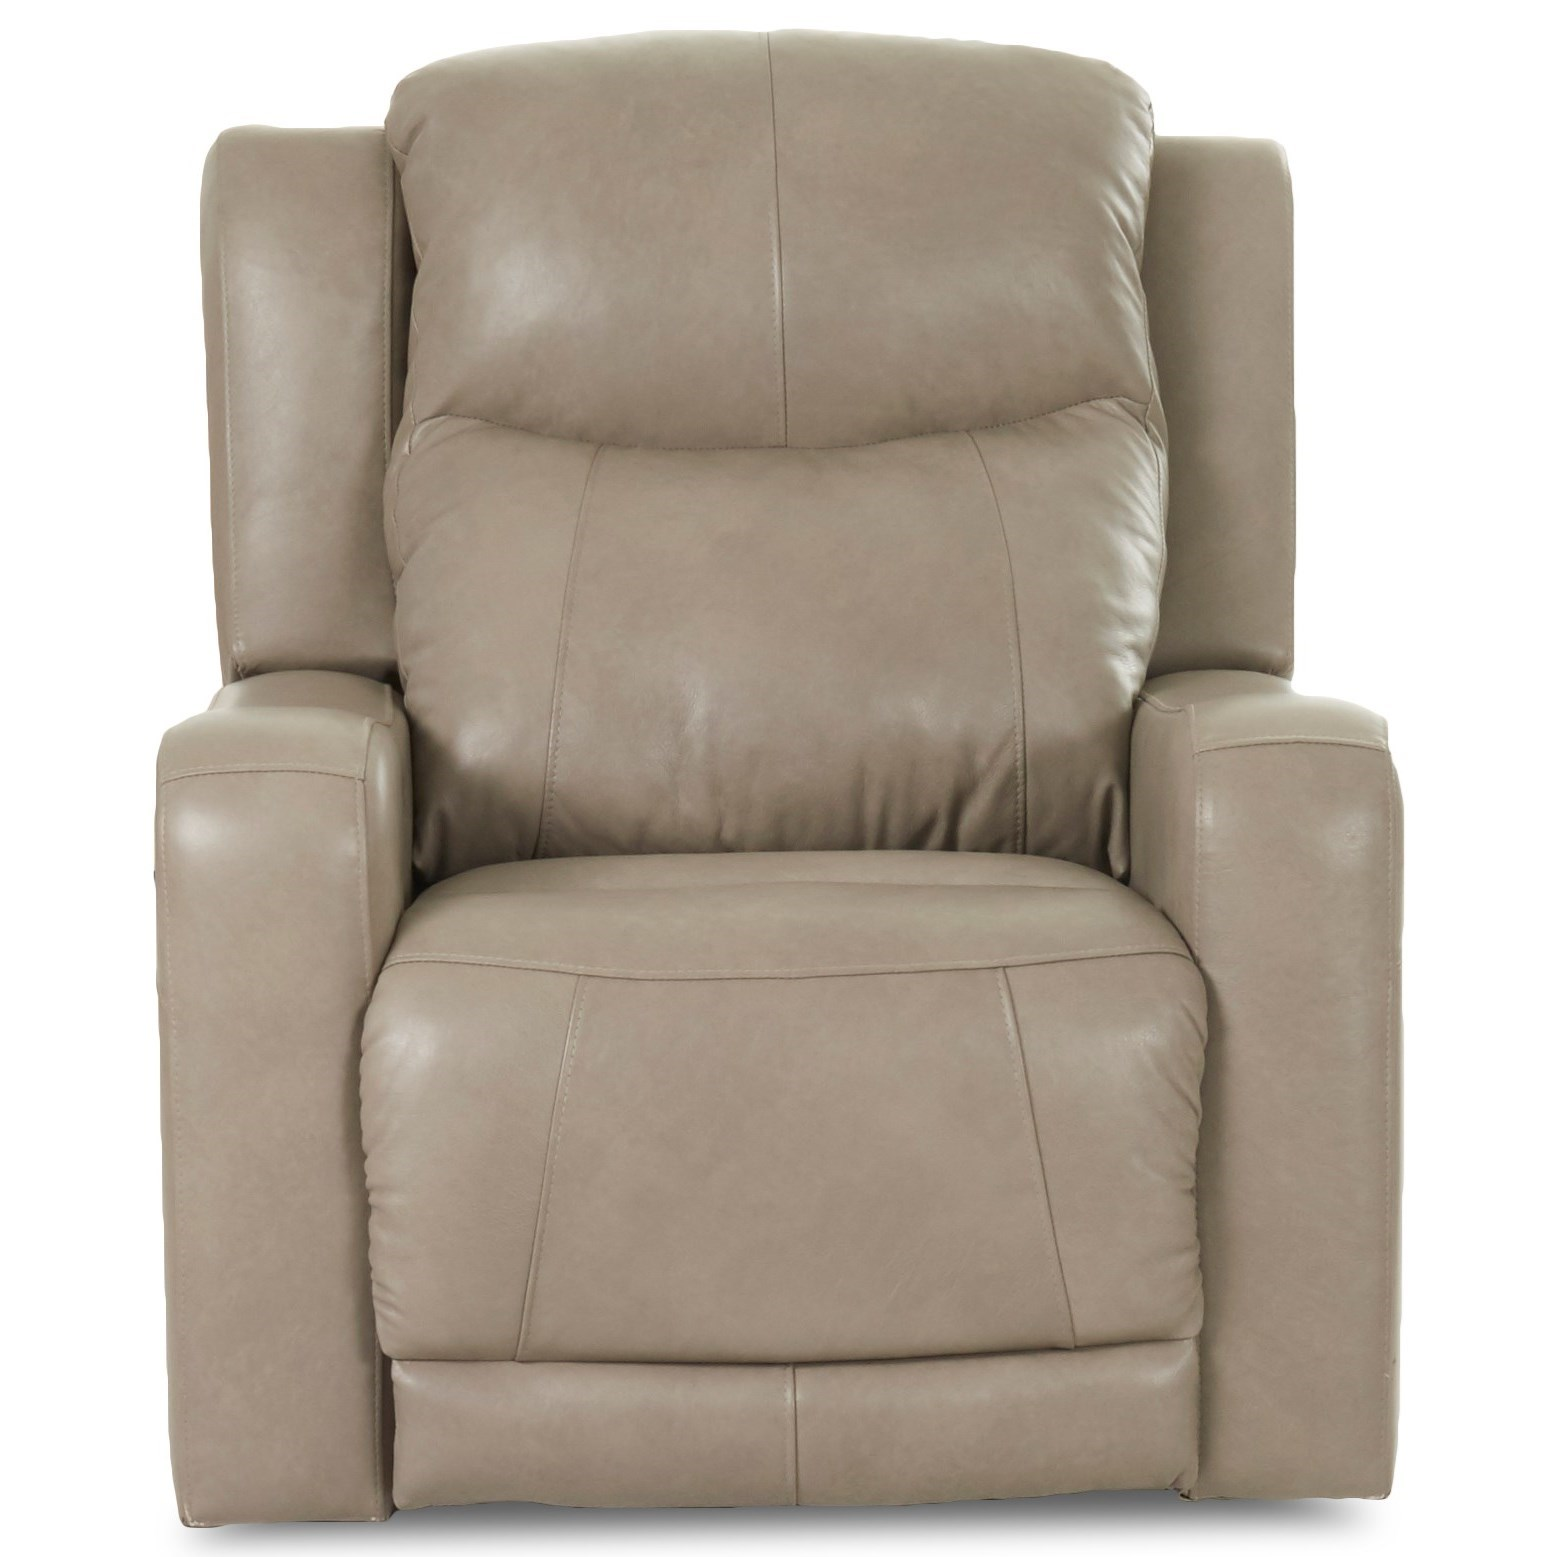 Pwr Recliner w/ Pwr Head and Lumbar